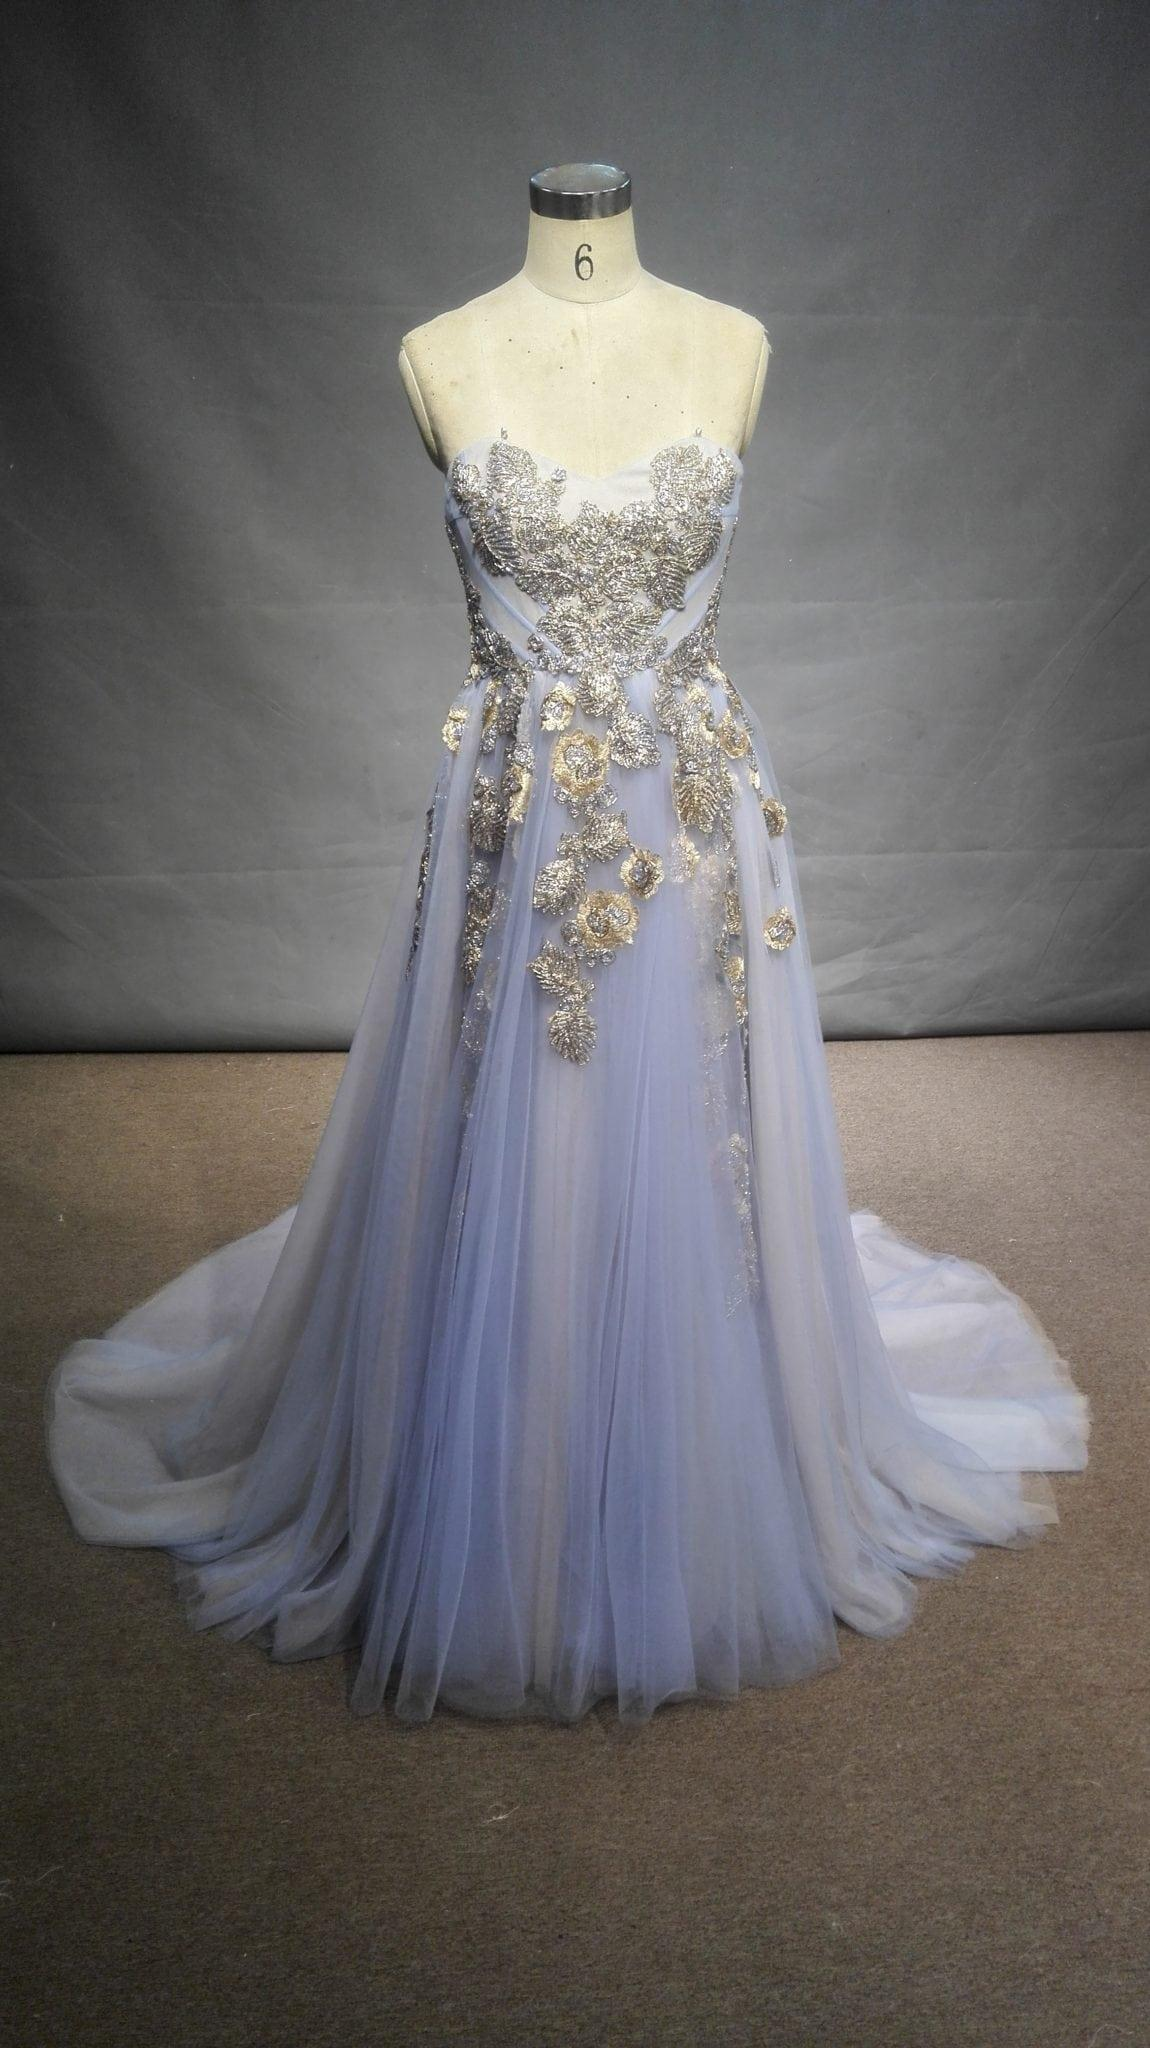 Strapless pastel blue colored a-line evening gown